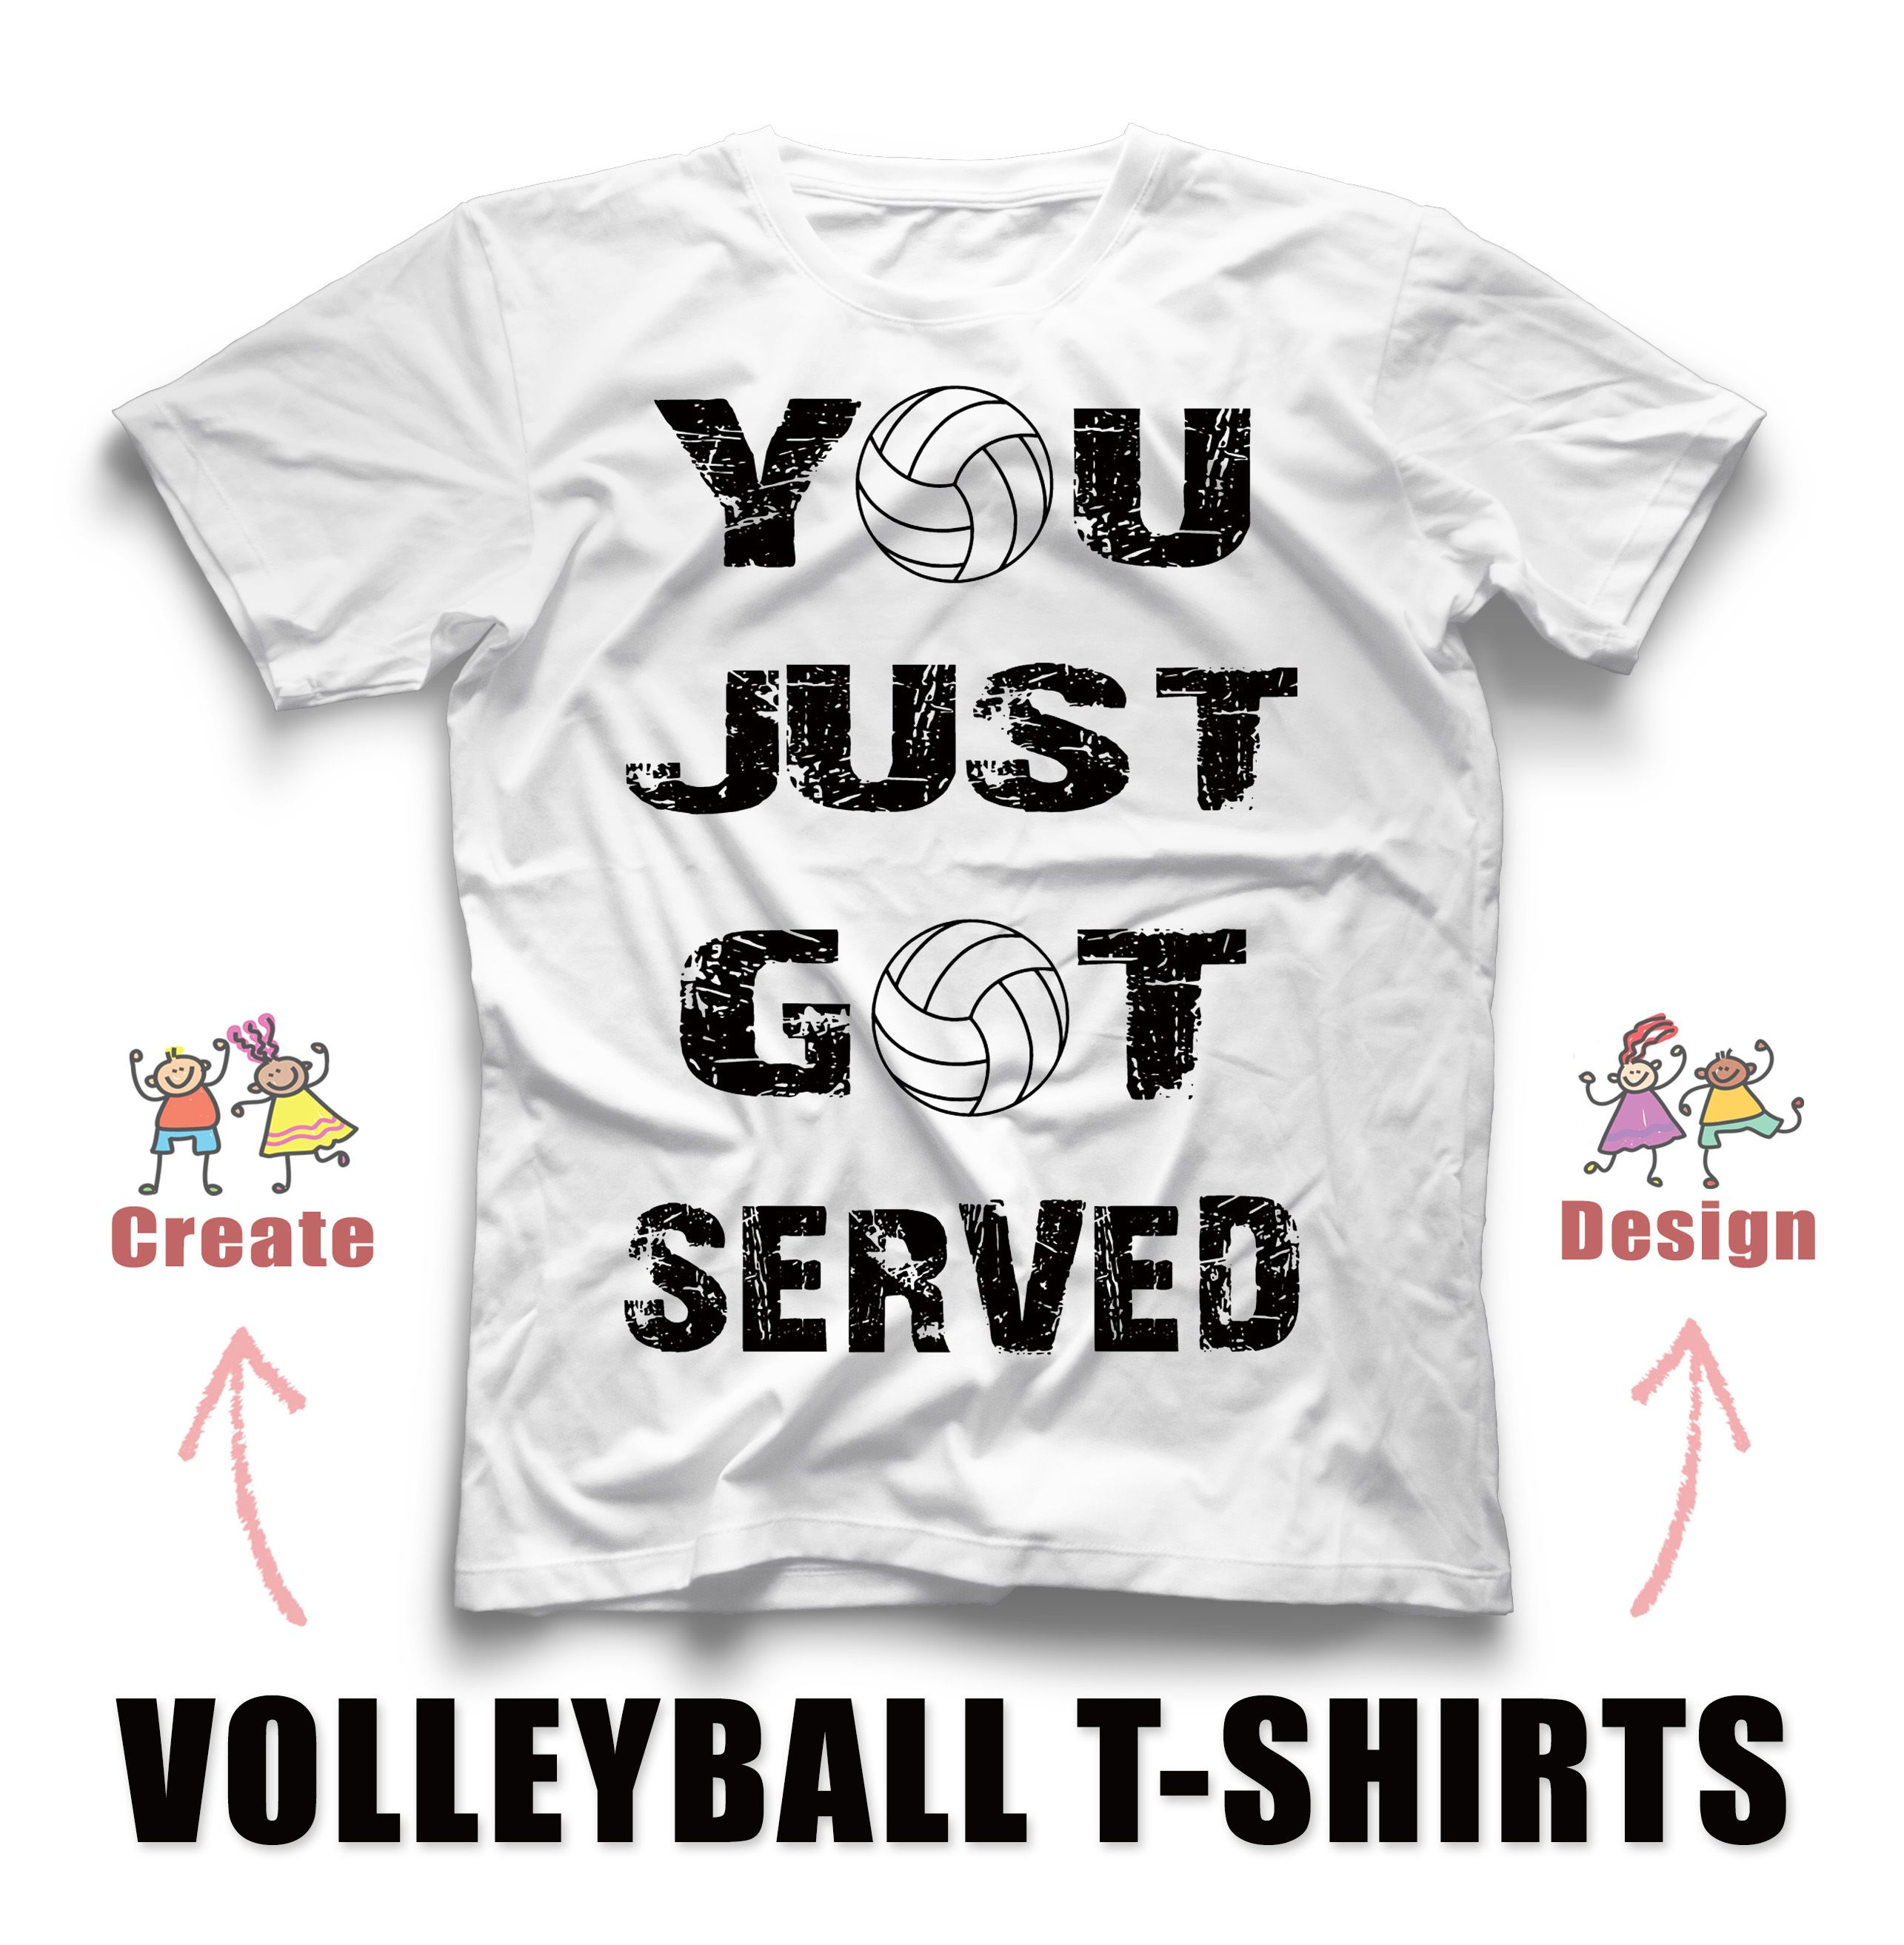 Volleyball Custom T Shirt Design Idea For You Volleyball Team